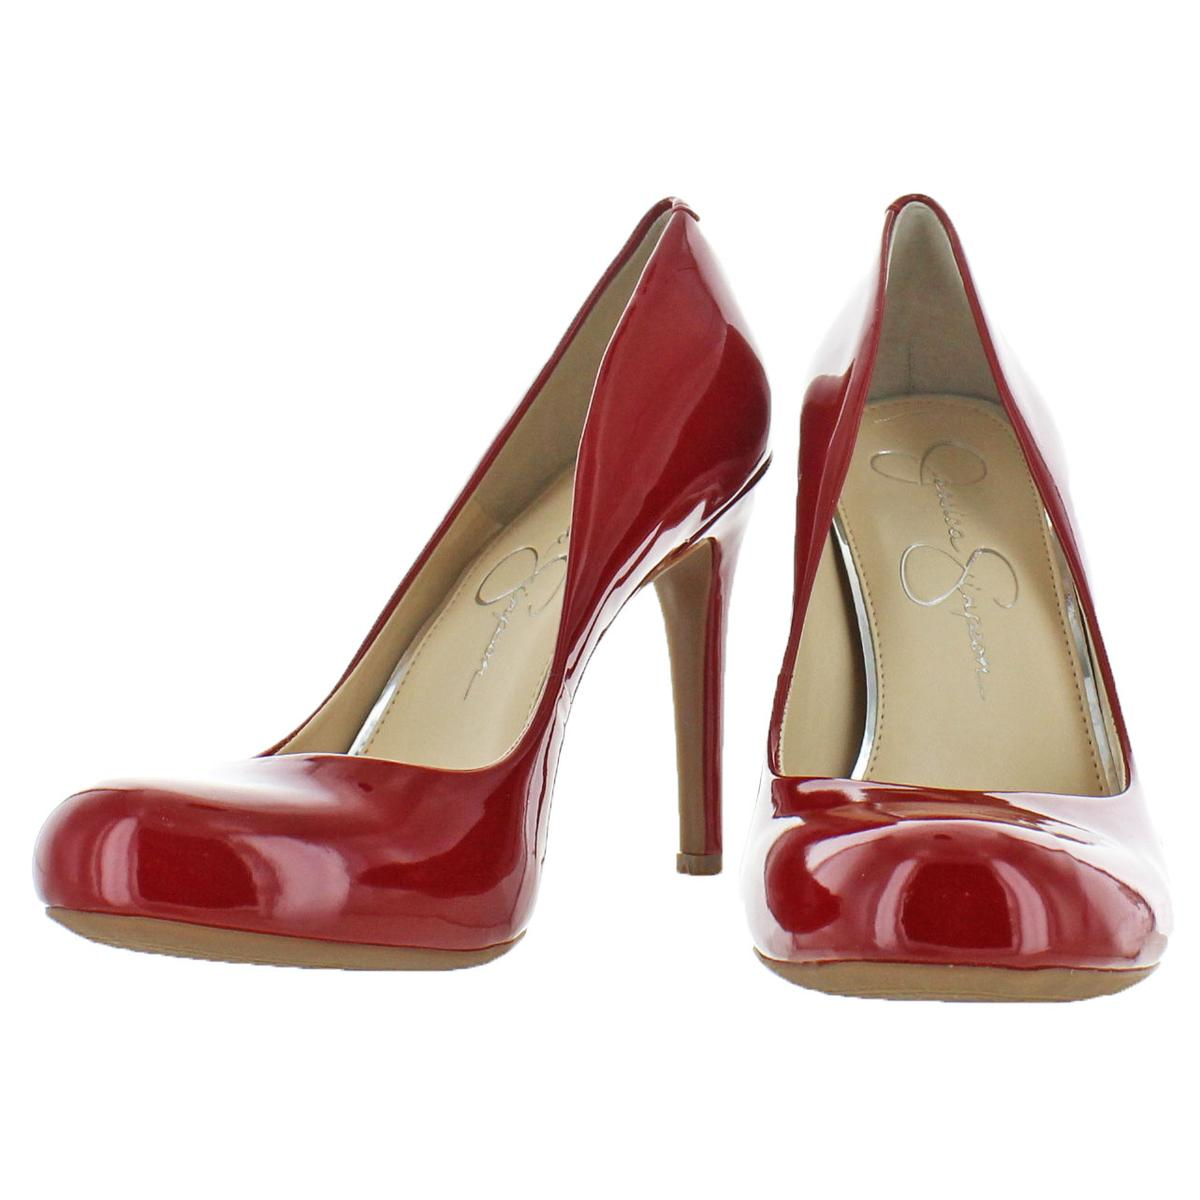 Jessica-Simpson-Women-039-s-Calie-Round-Toe-Classic-Heels-Pumps-Shoes thumbnail 18